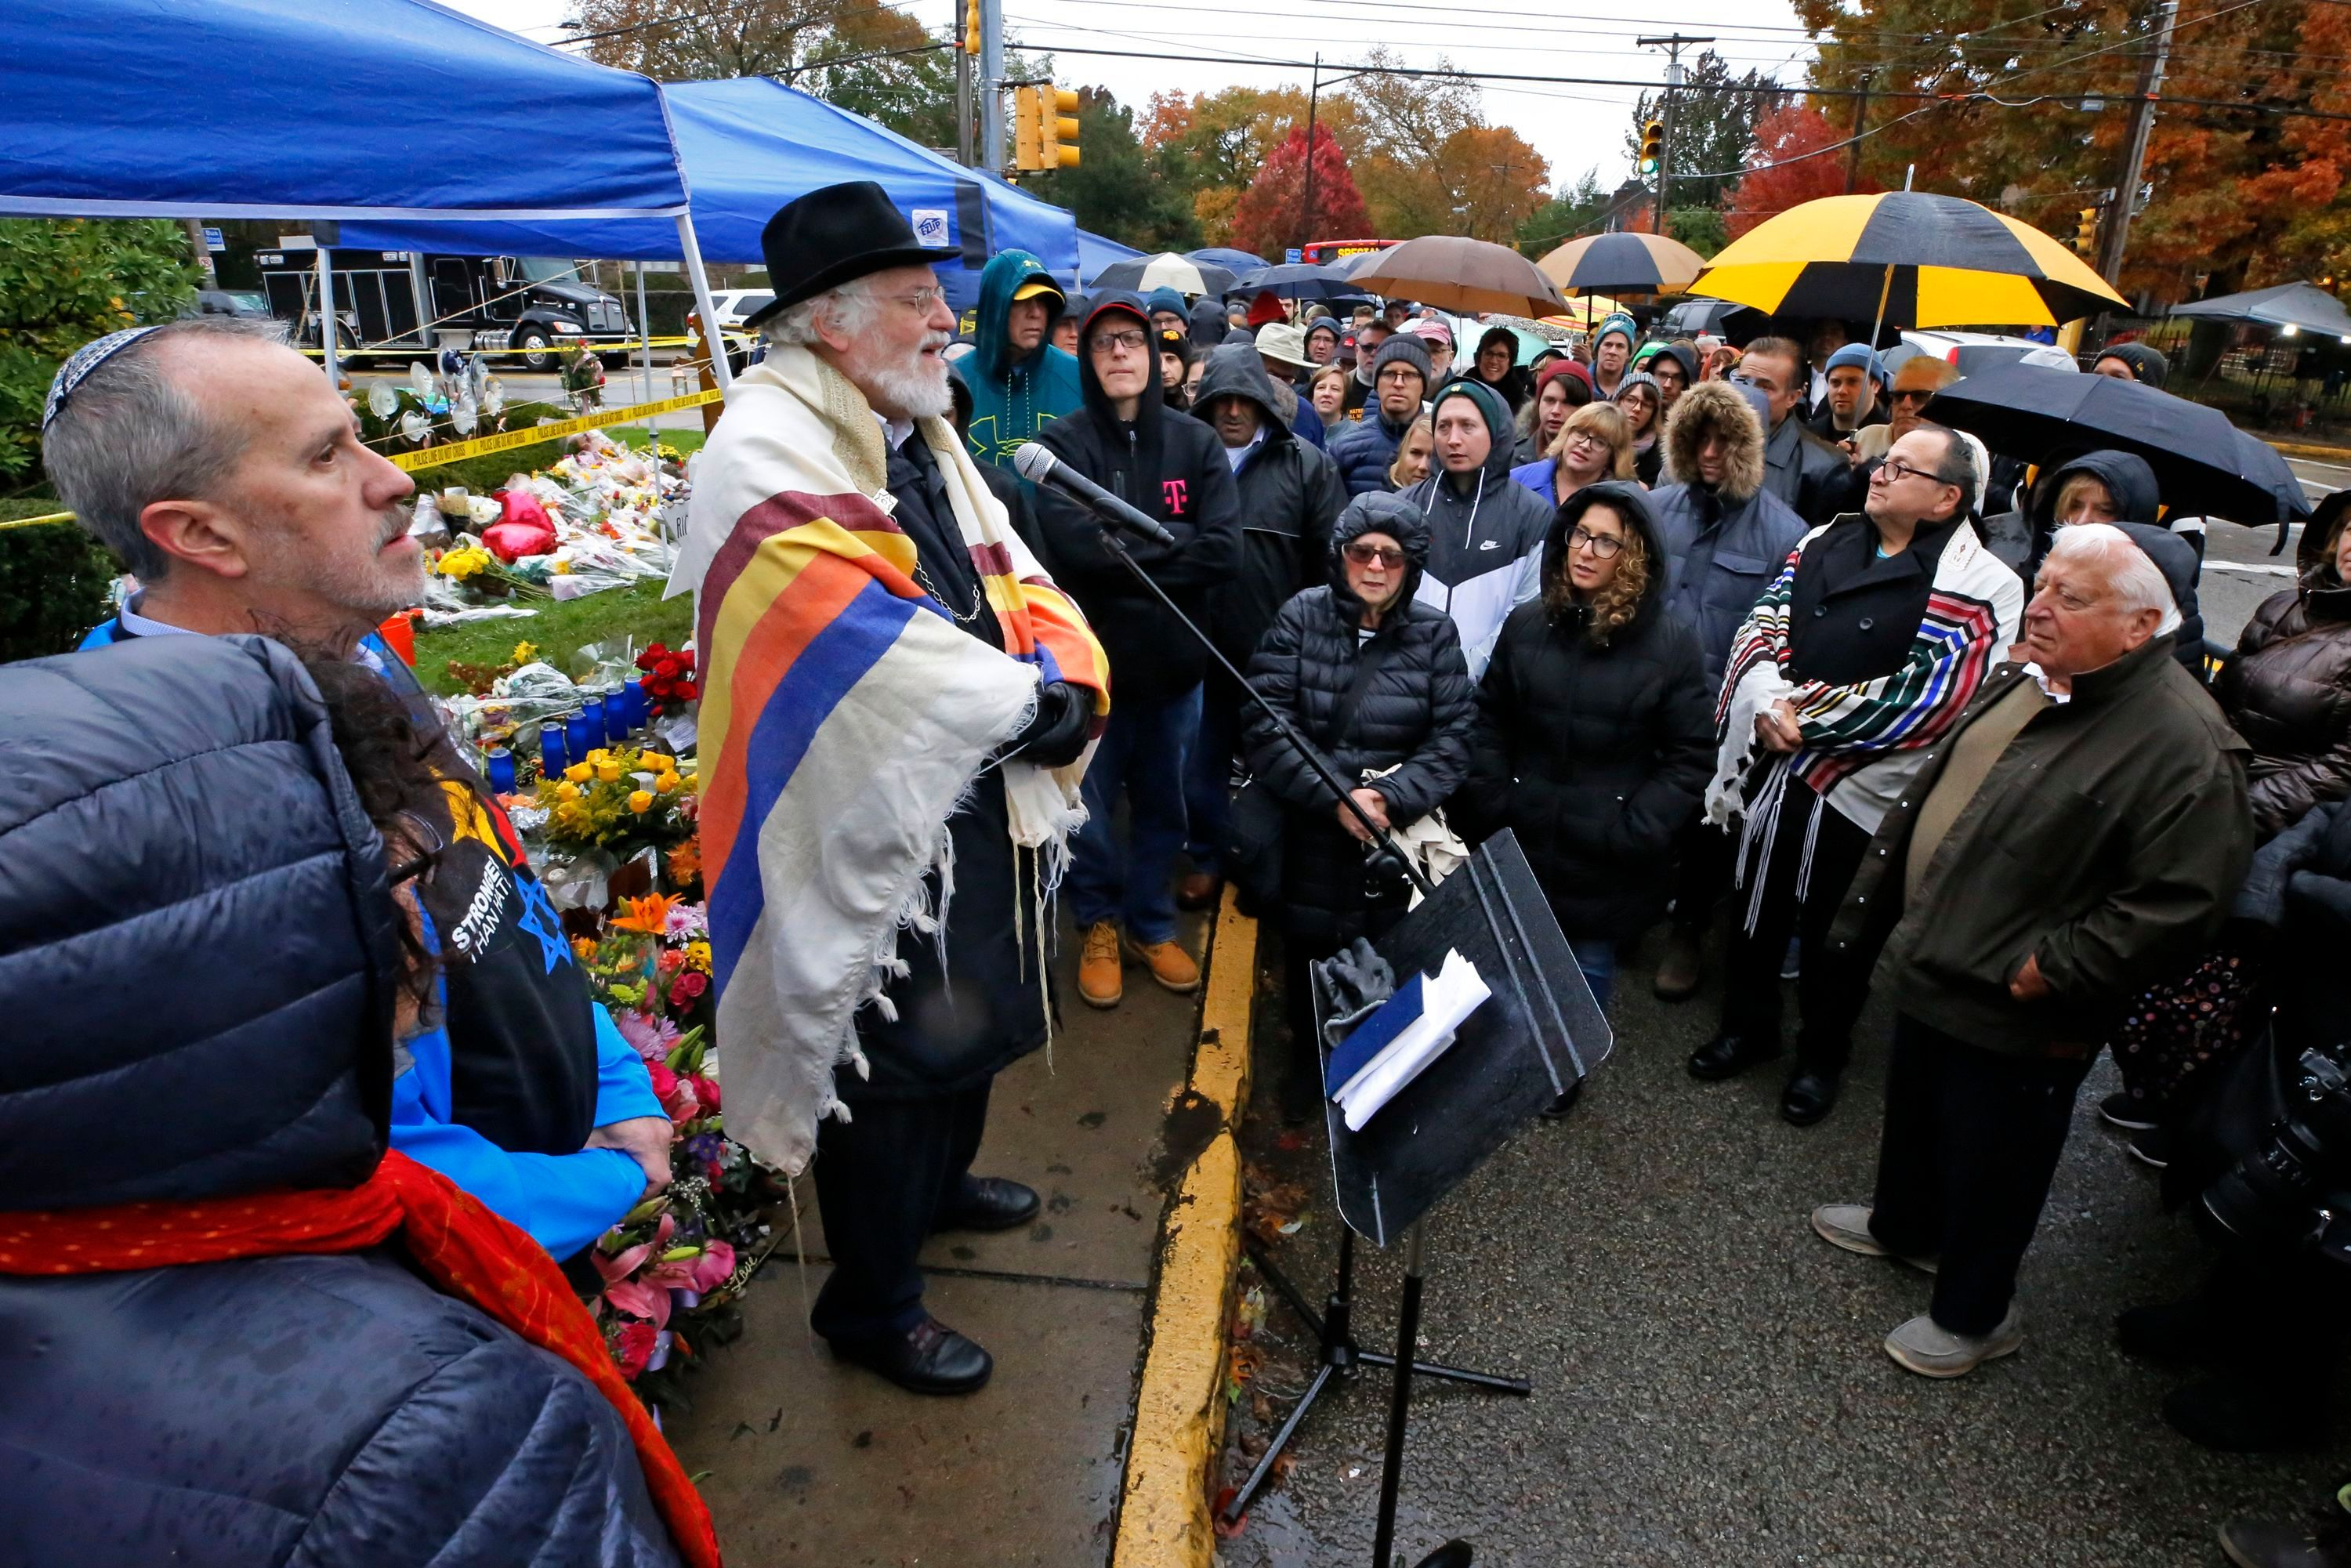 A Shabbat morning service led by a former Rabbi at Tree of Life Synagogue. Rabbi Chuck Diamond is held outside the Tree of Life Synagogue in Pittsburgh on Nov. 3, 2018, a week after 11 people were killed and six wound when their worship was interrupted by a gunman's bullets on Saturday, Oct. 27, 2018